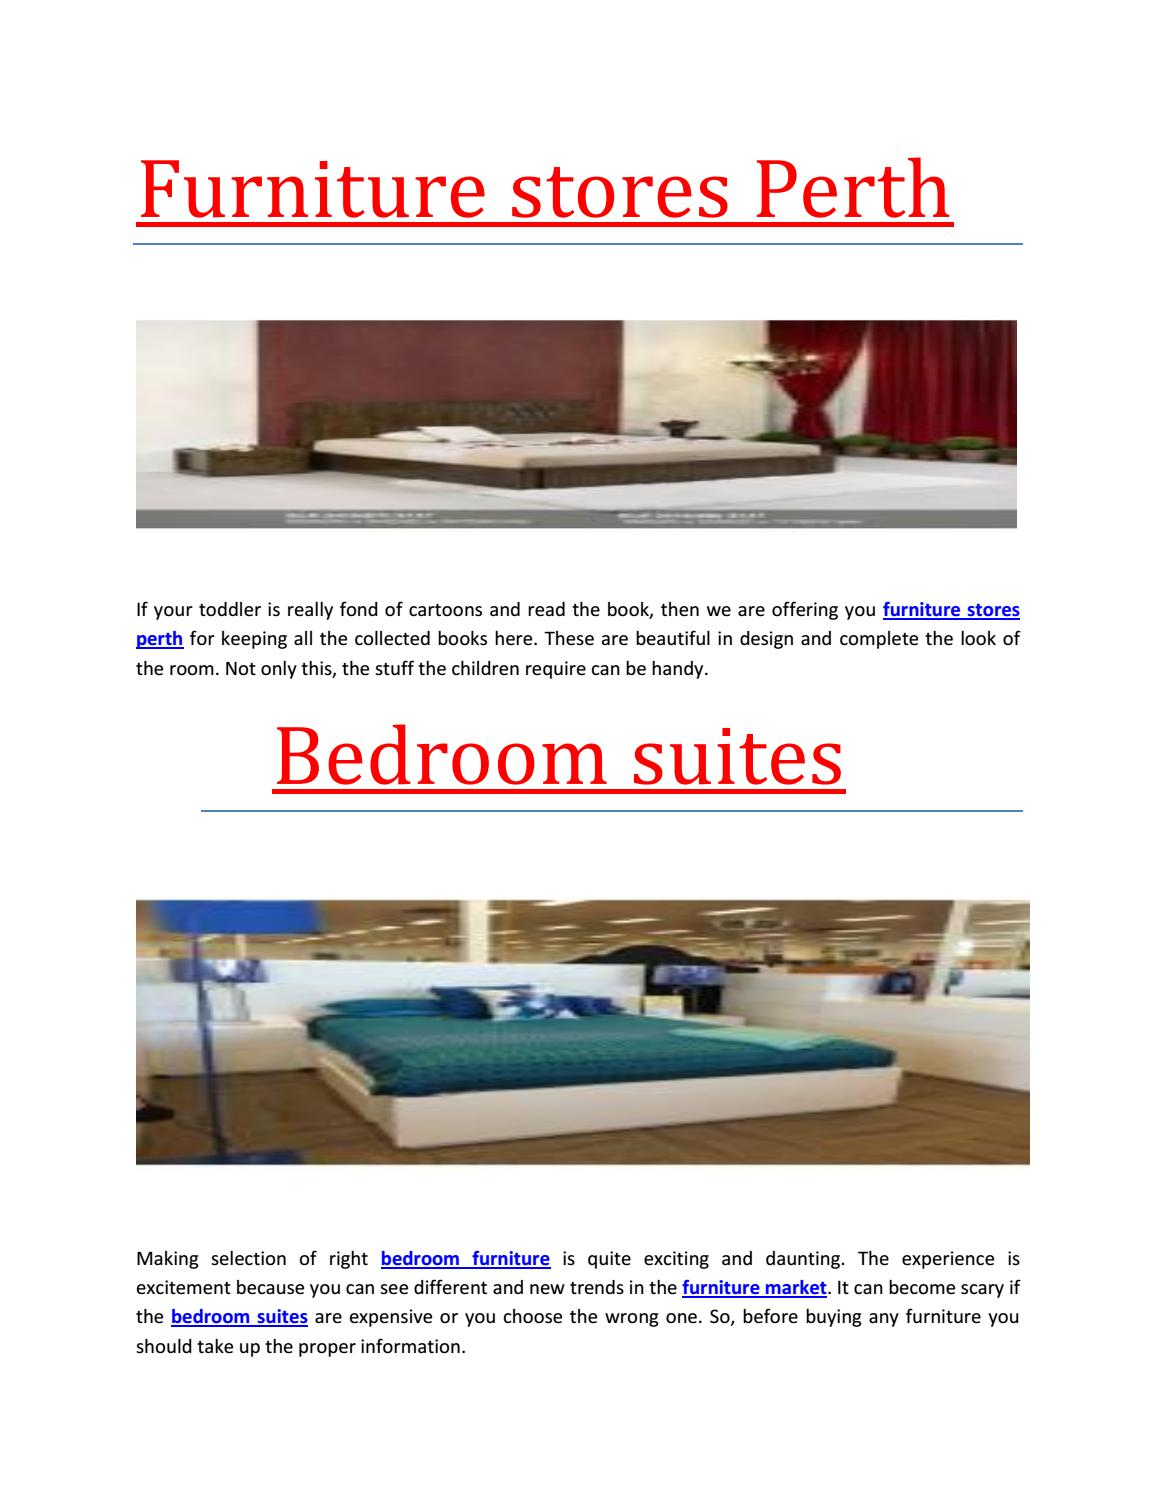 Perth Furniture Shops Furniture Stores Perth By Ashok Saraswat Issuu